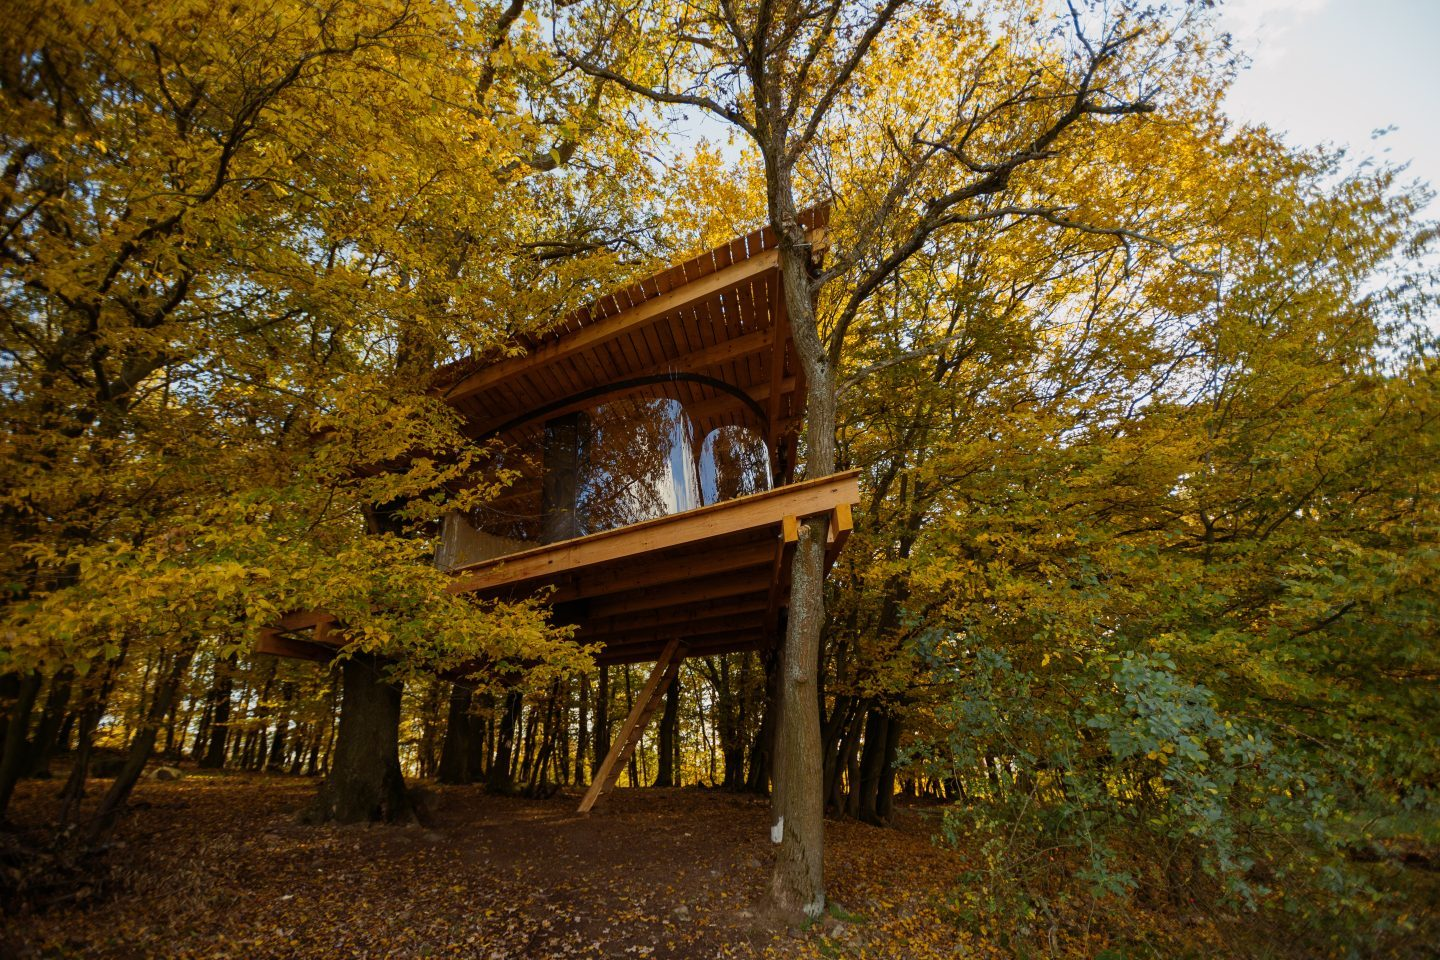 Tree house / Jan Tyrpekl